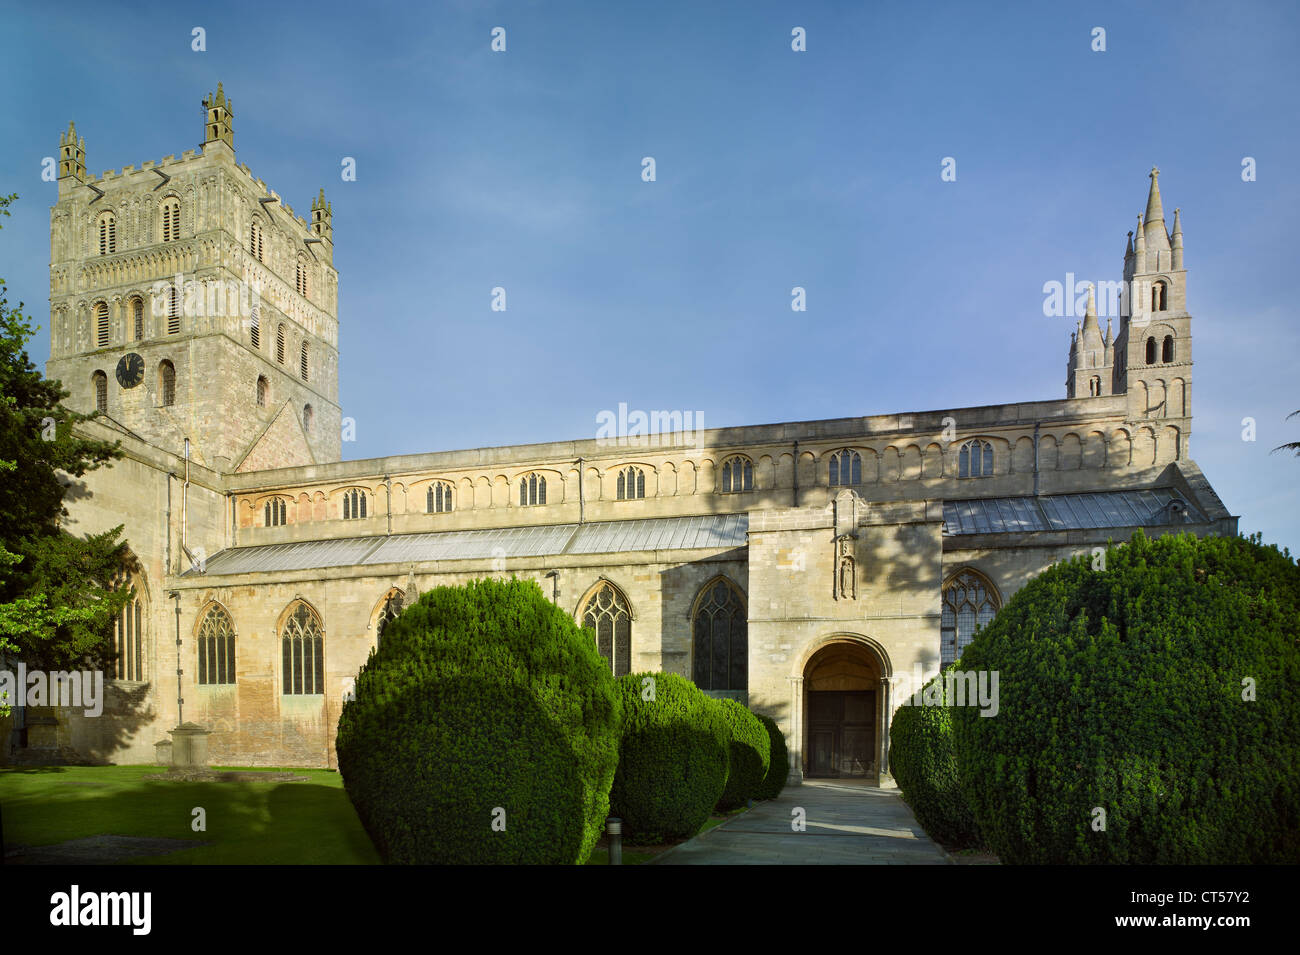 De l'abbaye de Tewkesbury, architecture normande Photo Stock